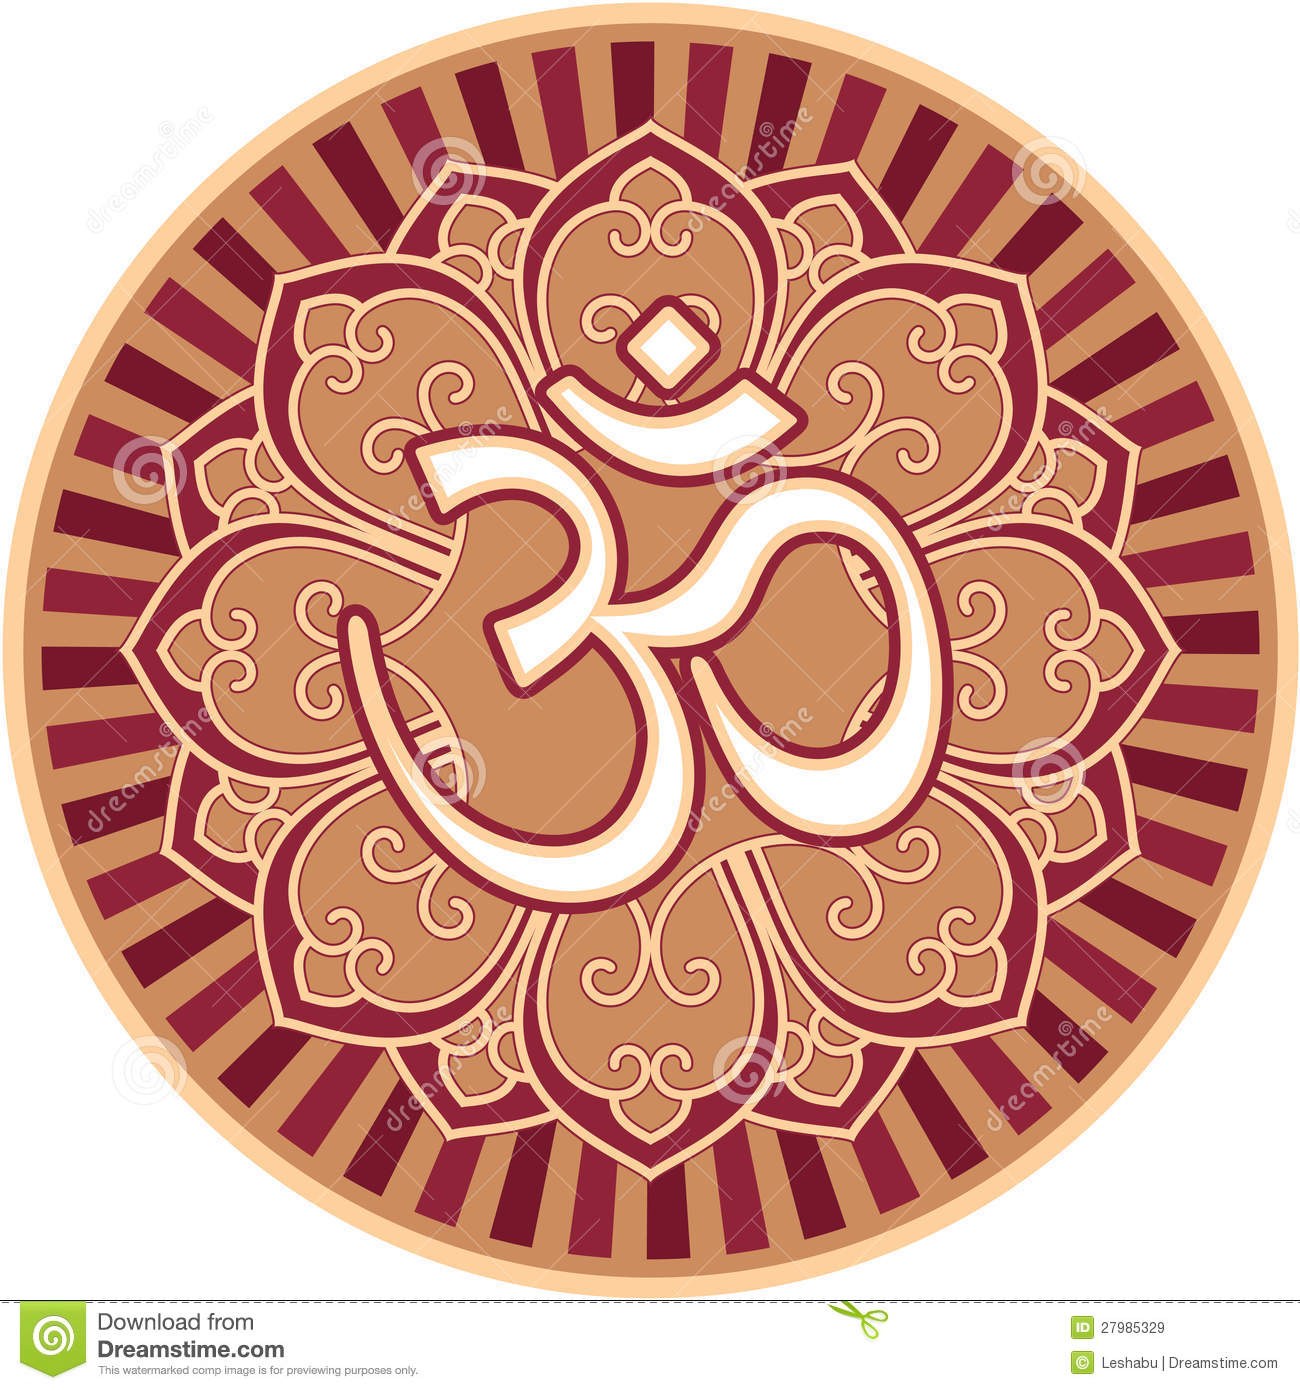 Om - Aum - Symbol In Flower Rosette Royalty Free Stock Images - Image ...